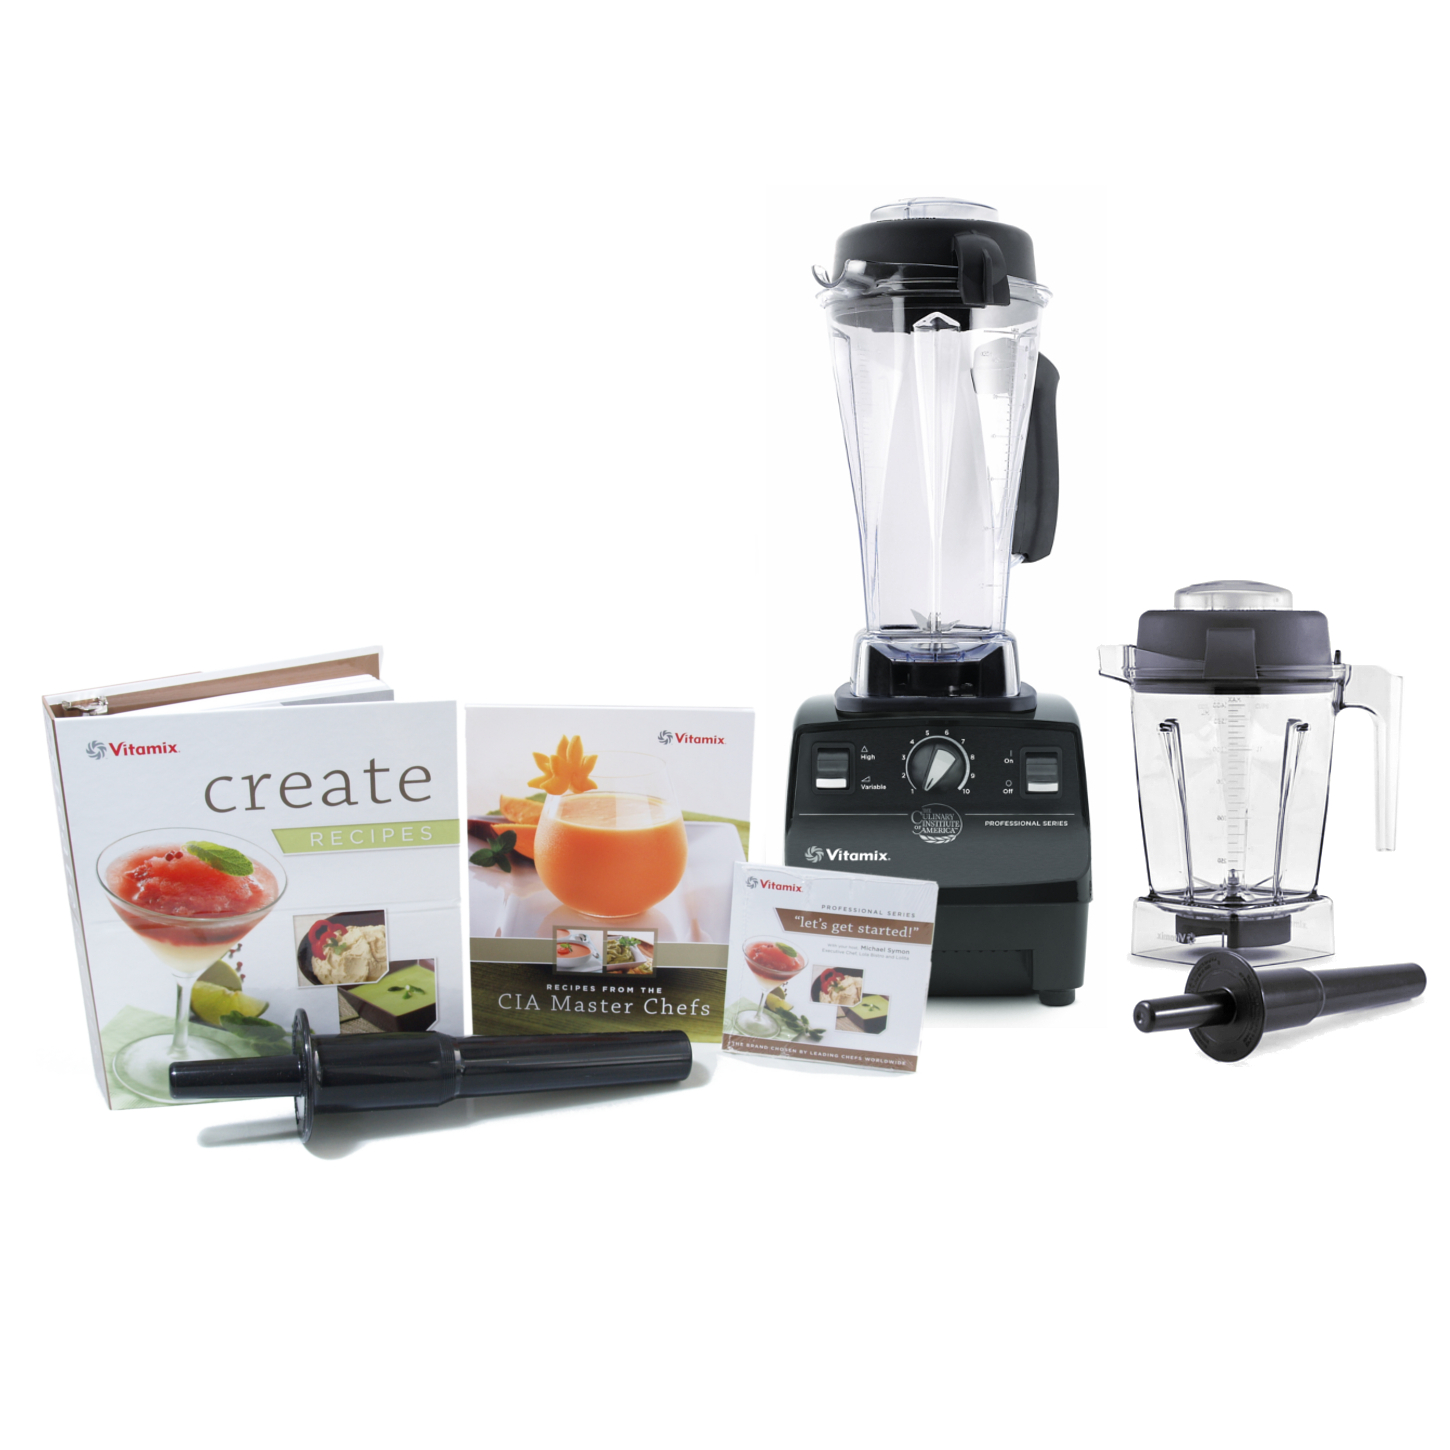 Vitamix CIA Professional Series Black Blender With 64 Ounce Wet Container and 48 Ounce Wet Container